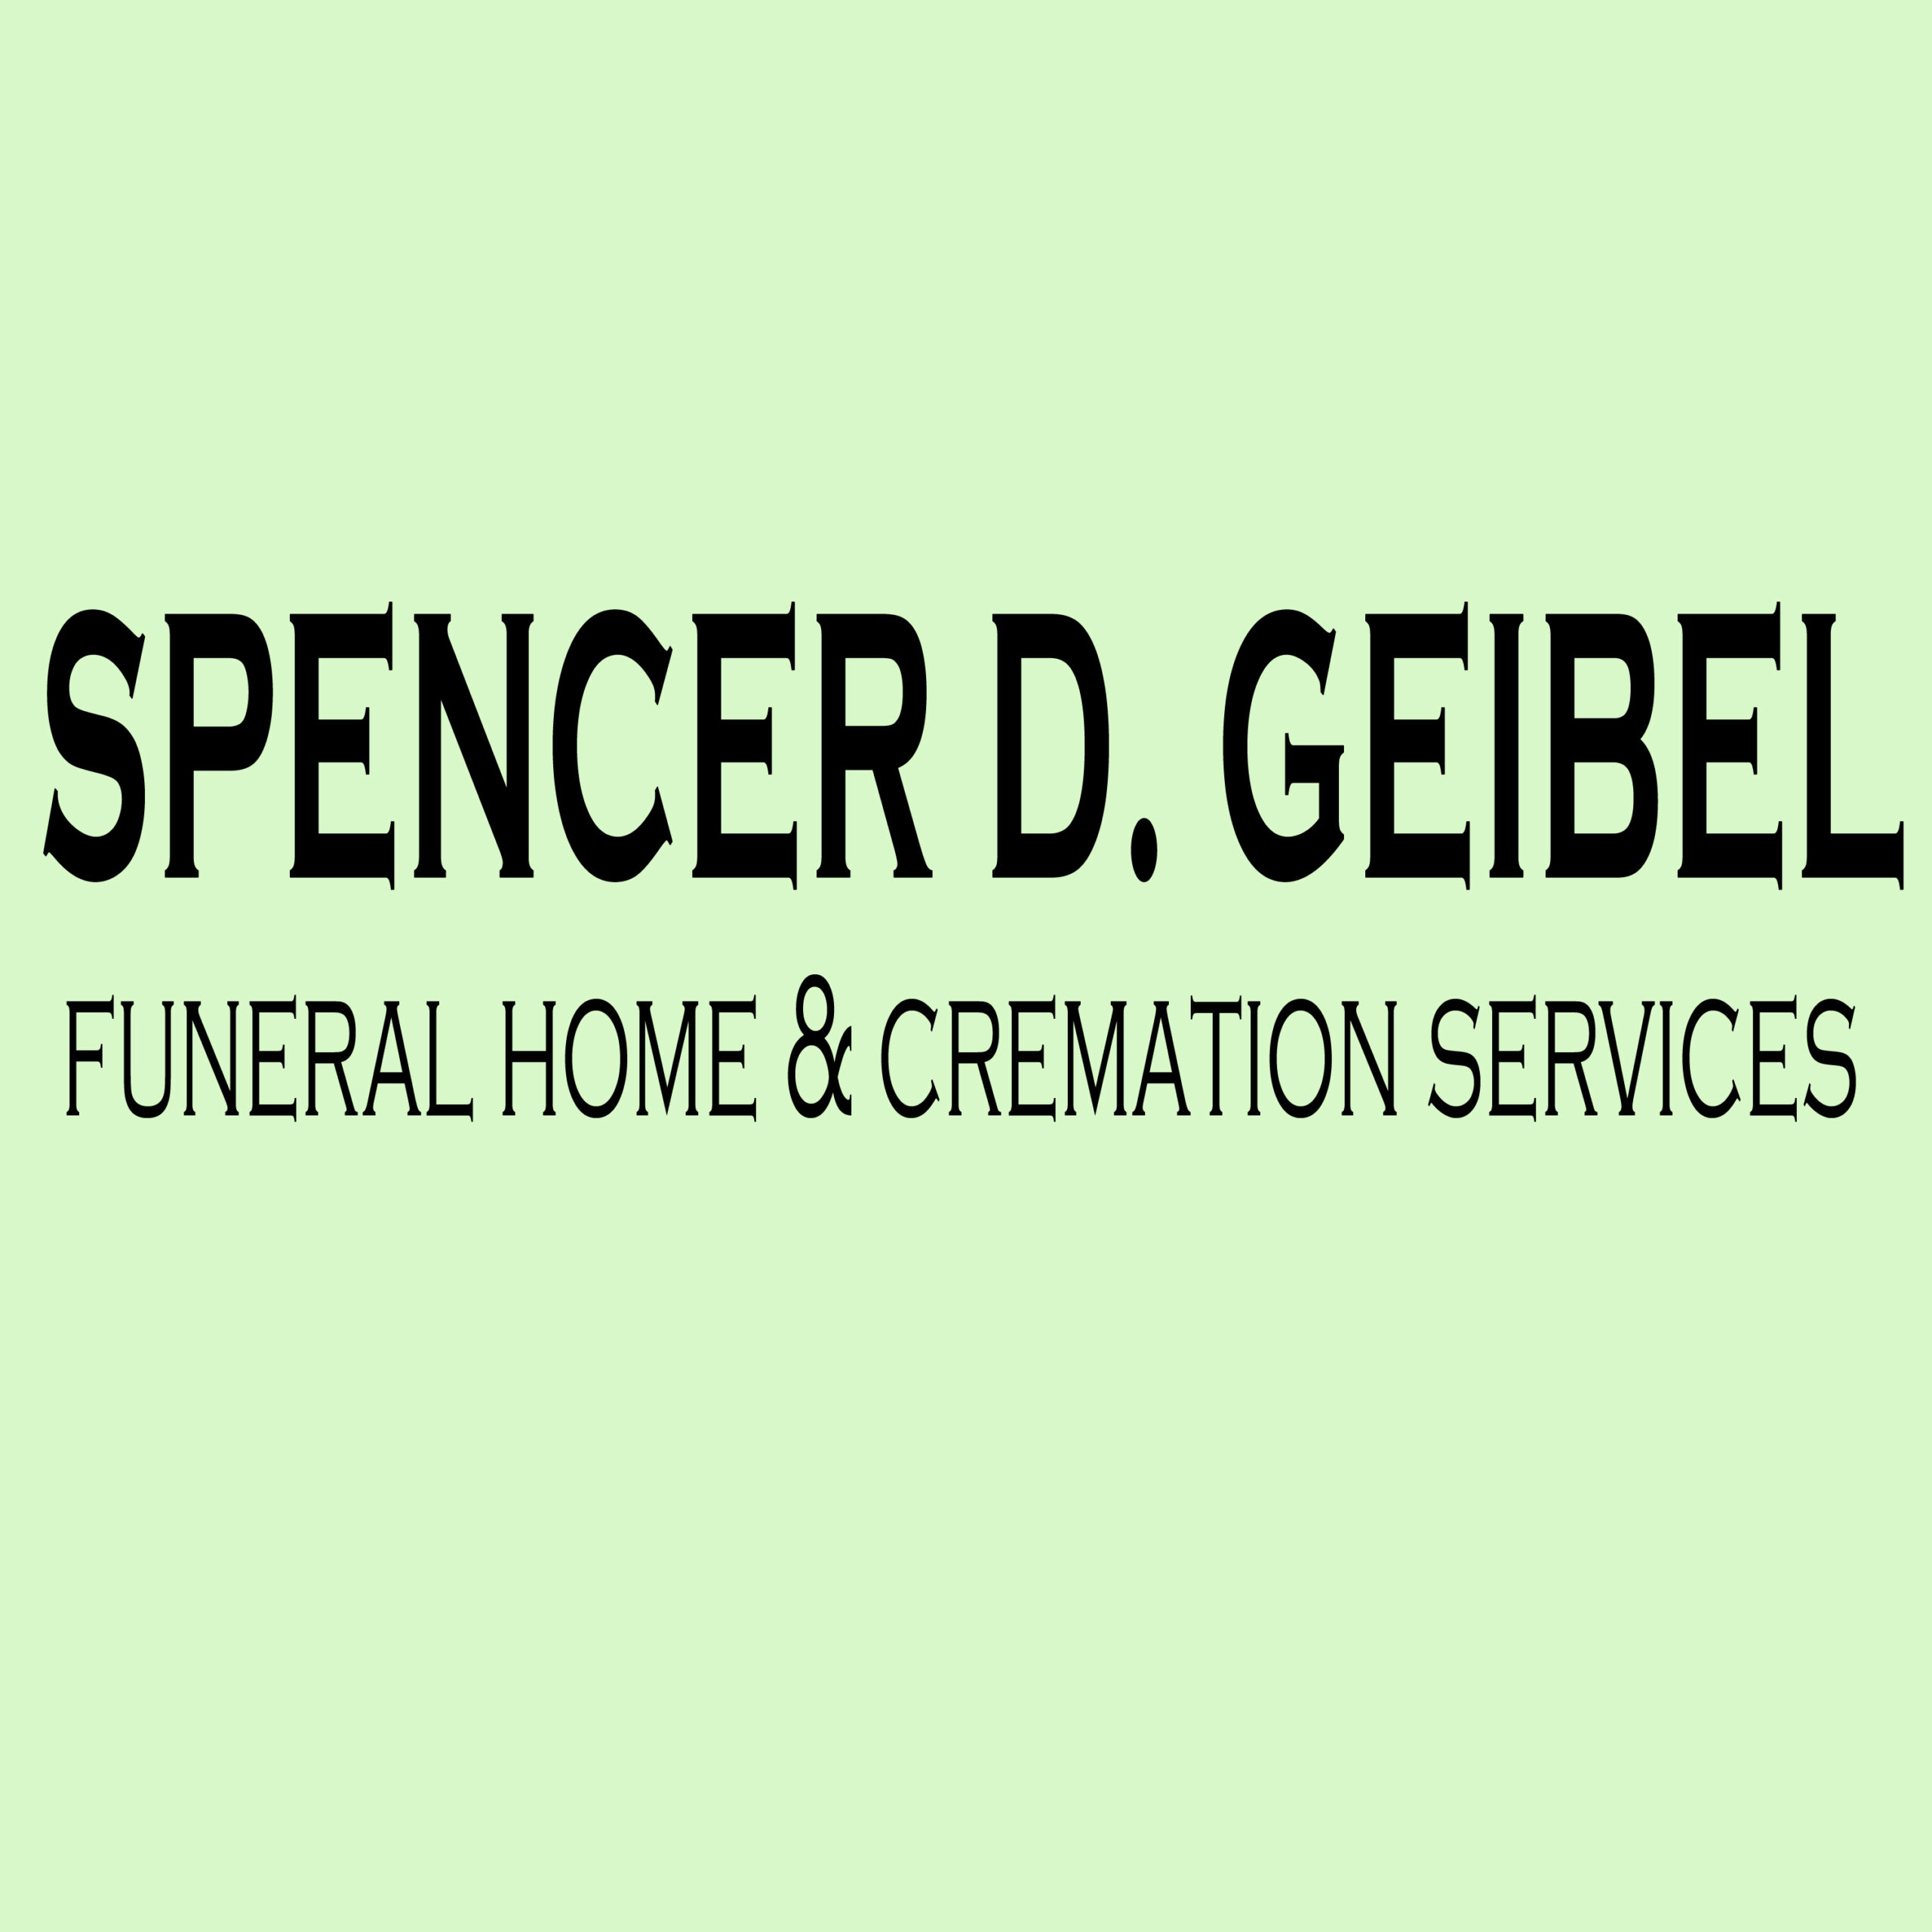 Spencer D Geibel Funeral Home & Cremation Services